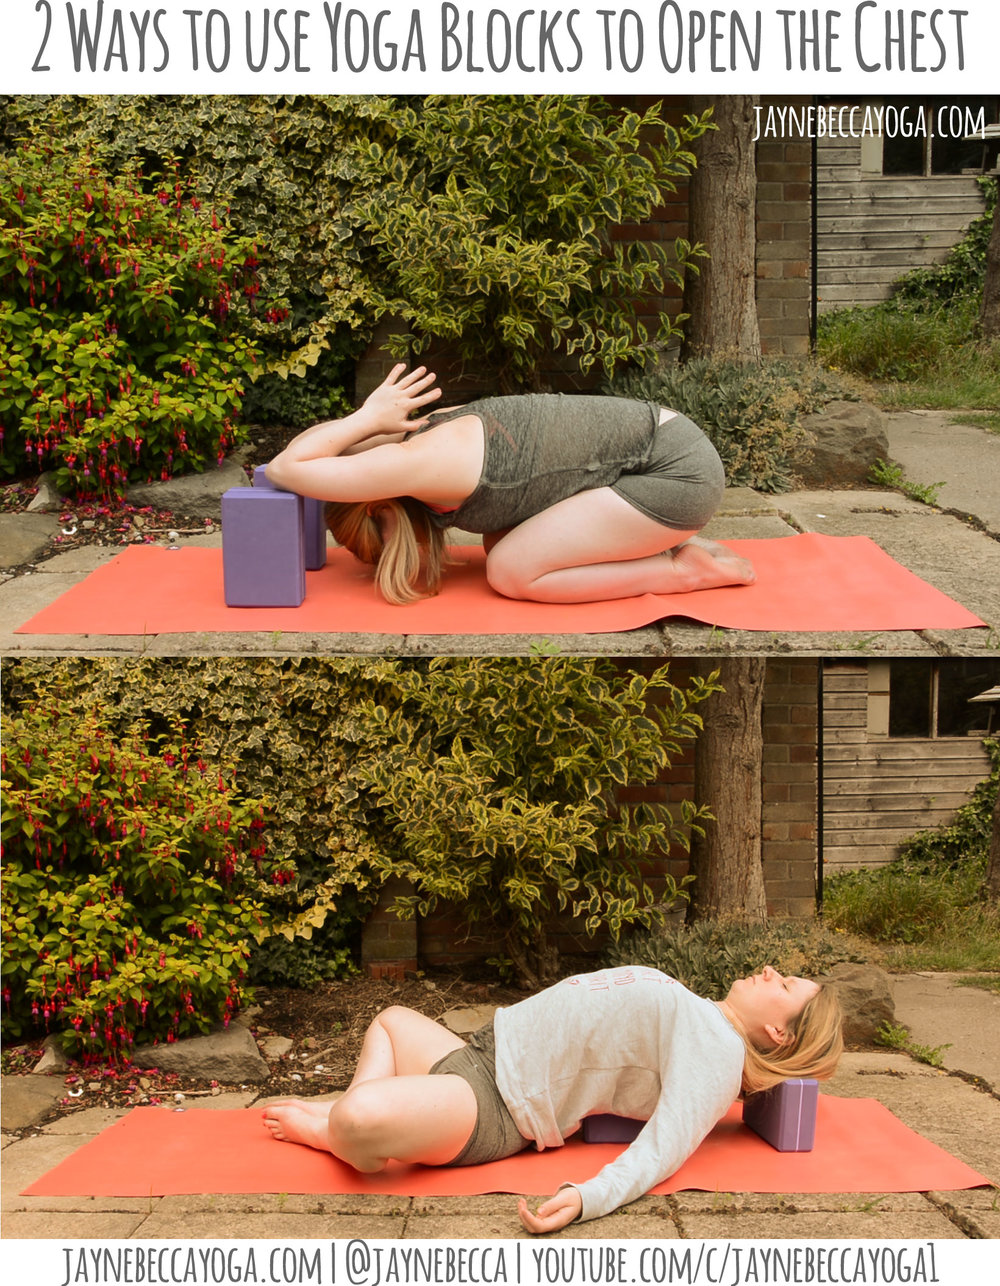 2-ways-to-use-yoga-blocks-to-open-the-chest.jpg